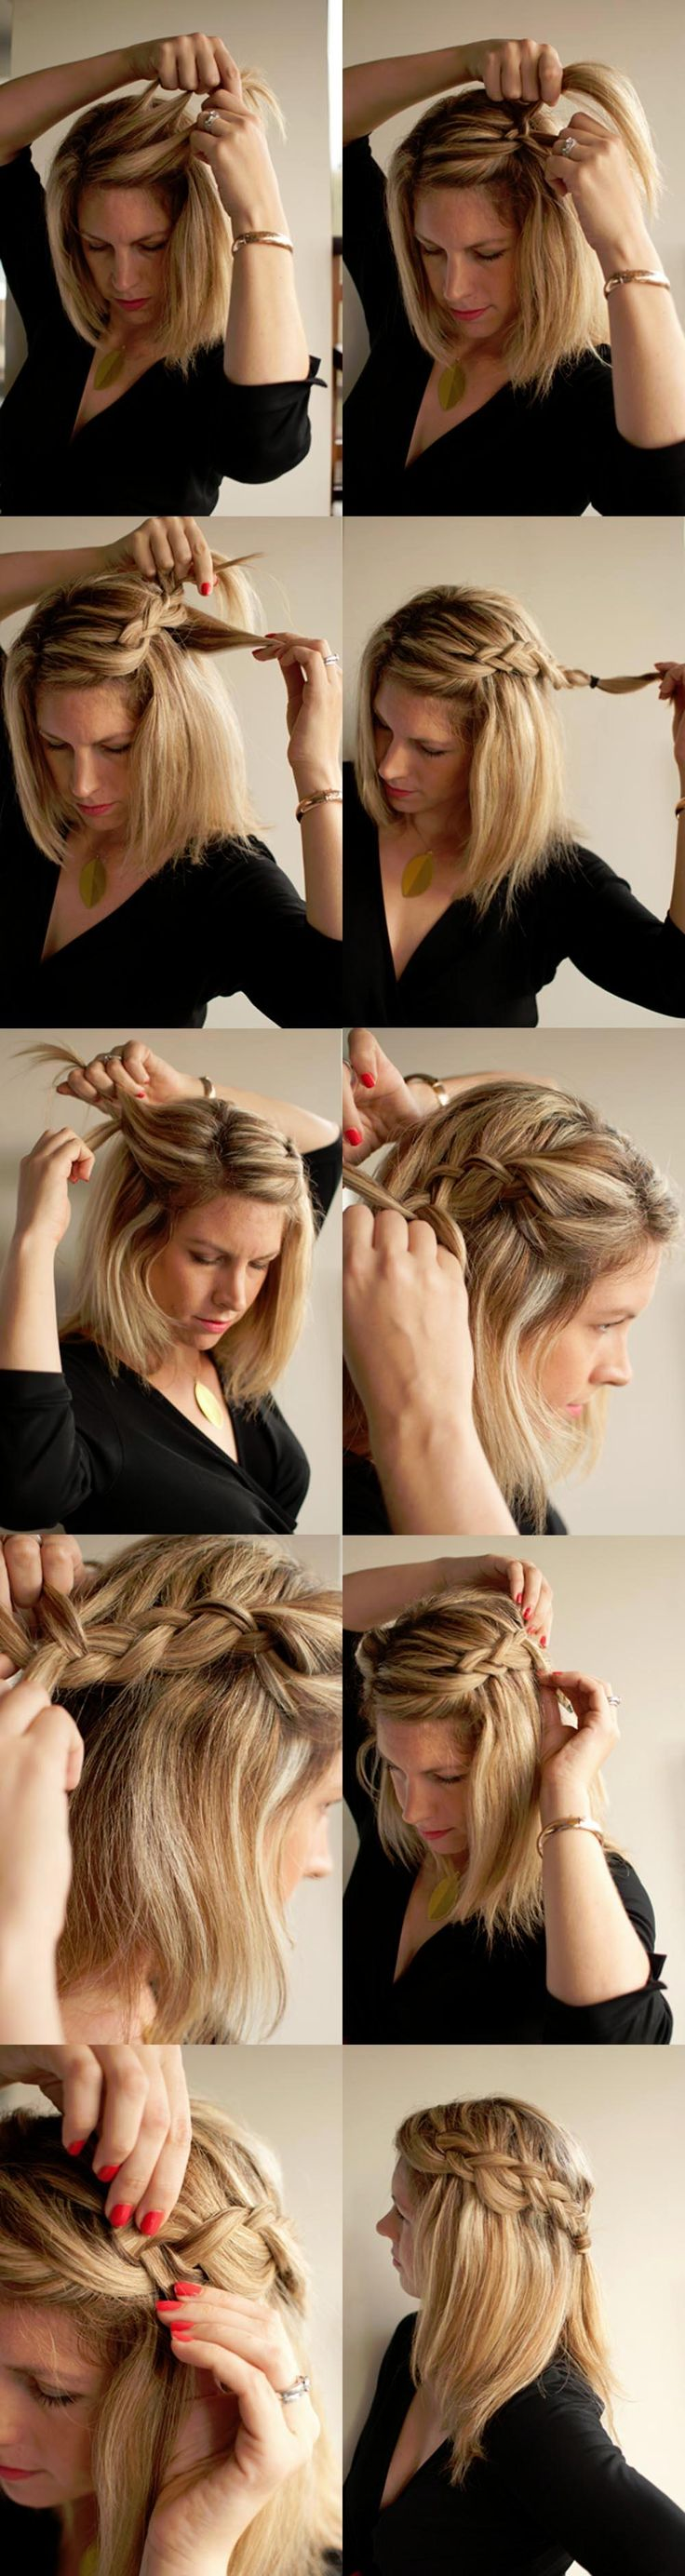 best beauty tips images on pinterest coiffure facile cute